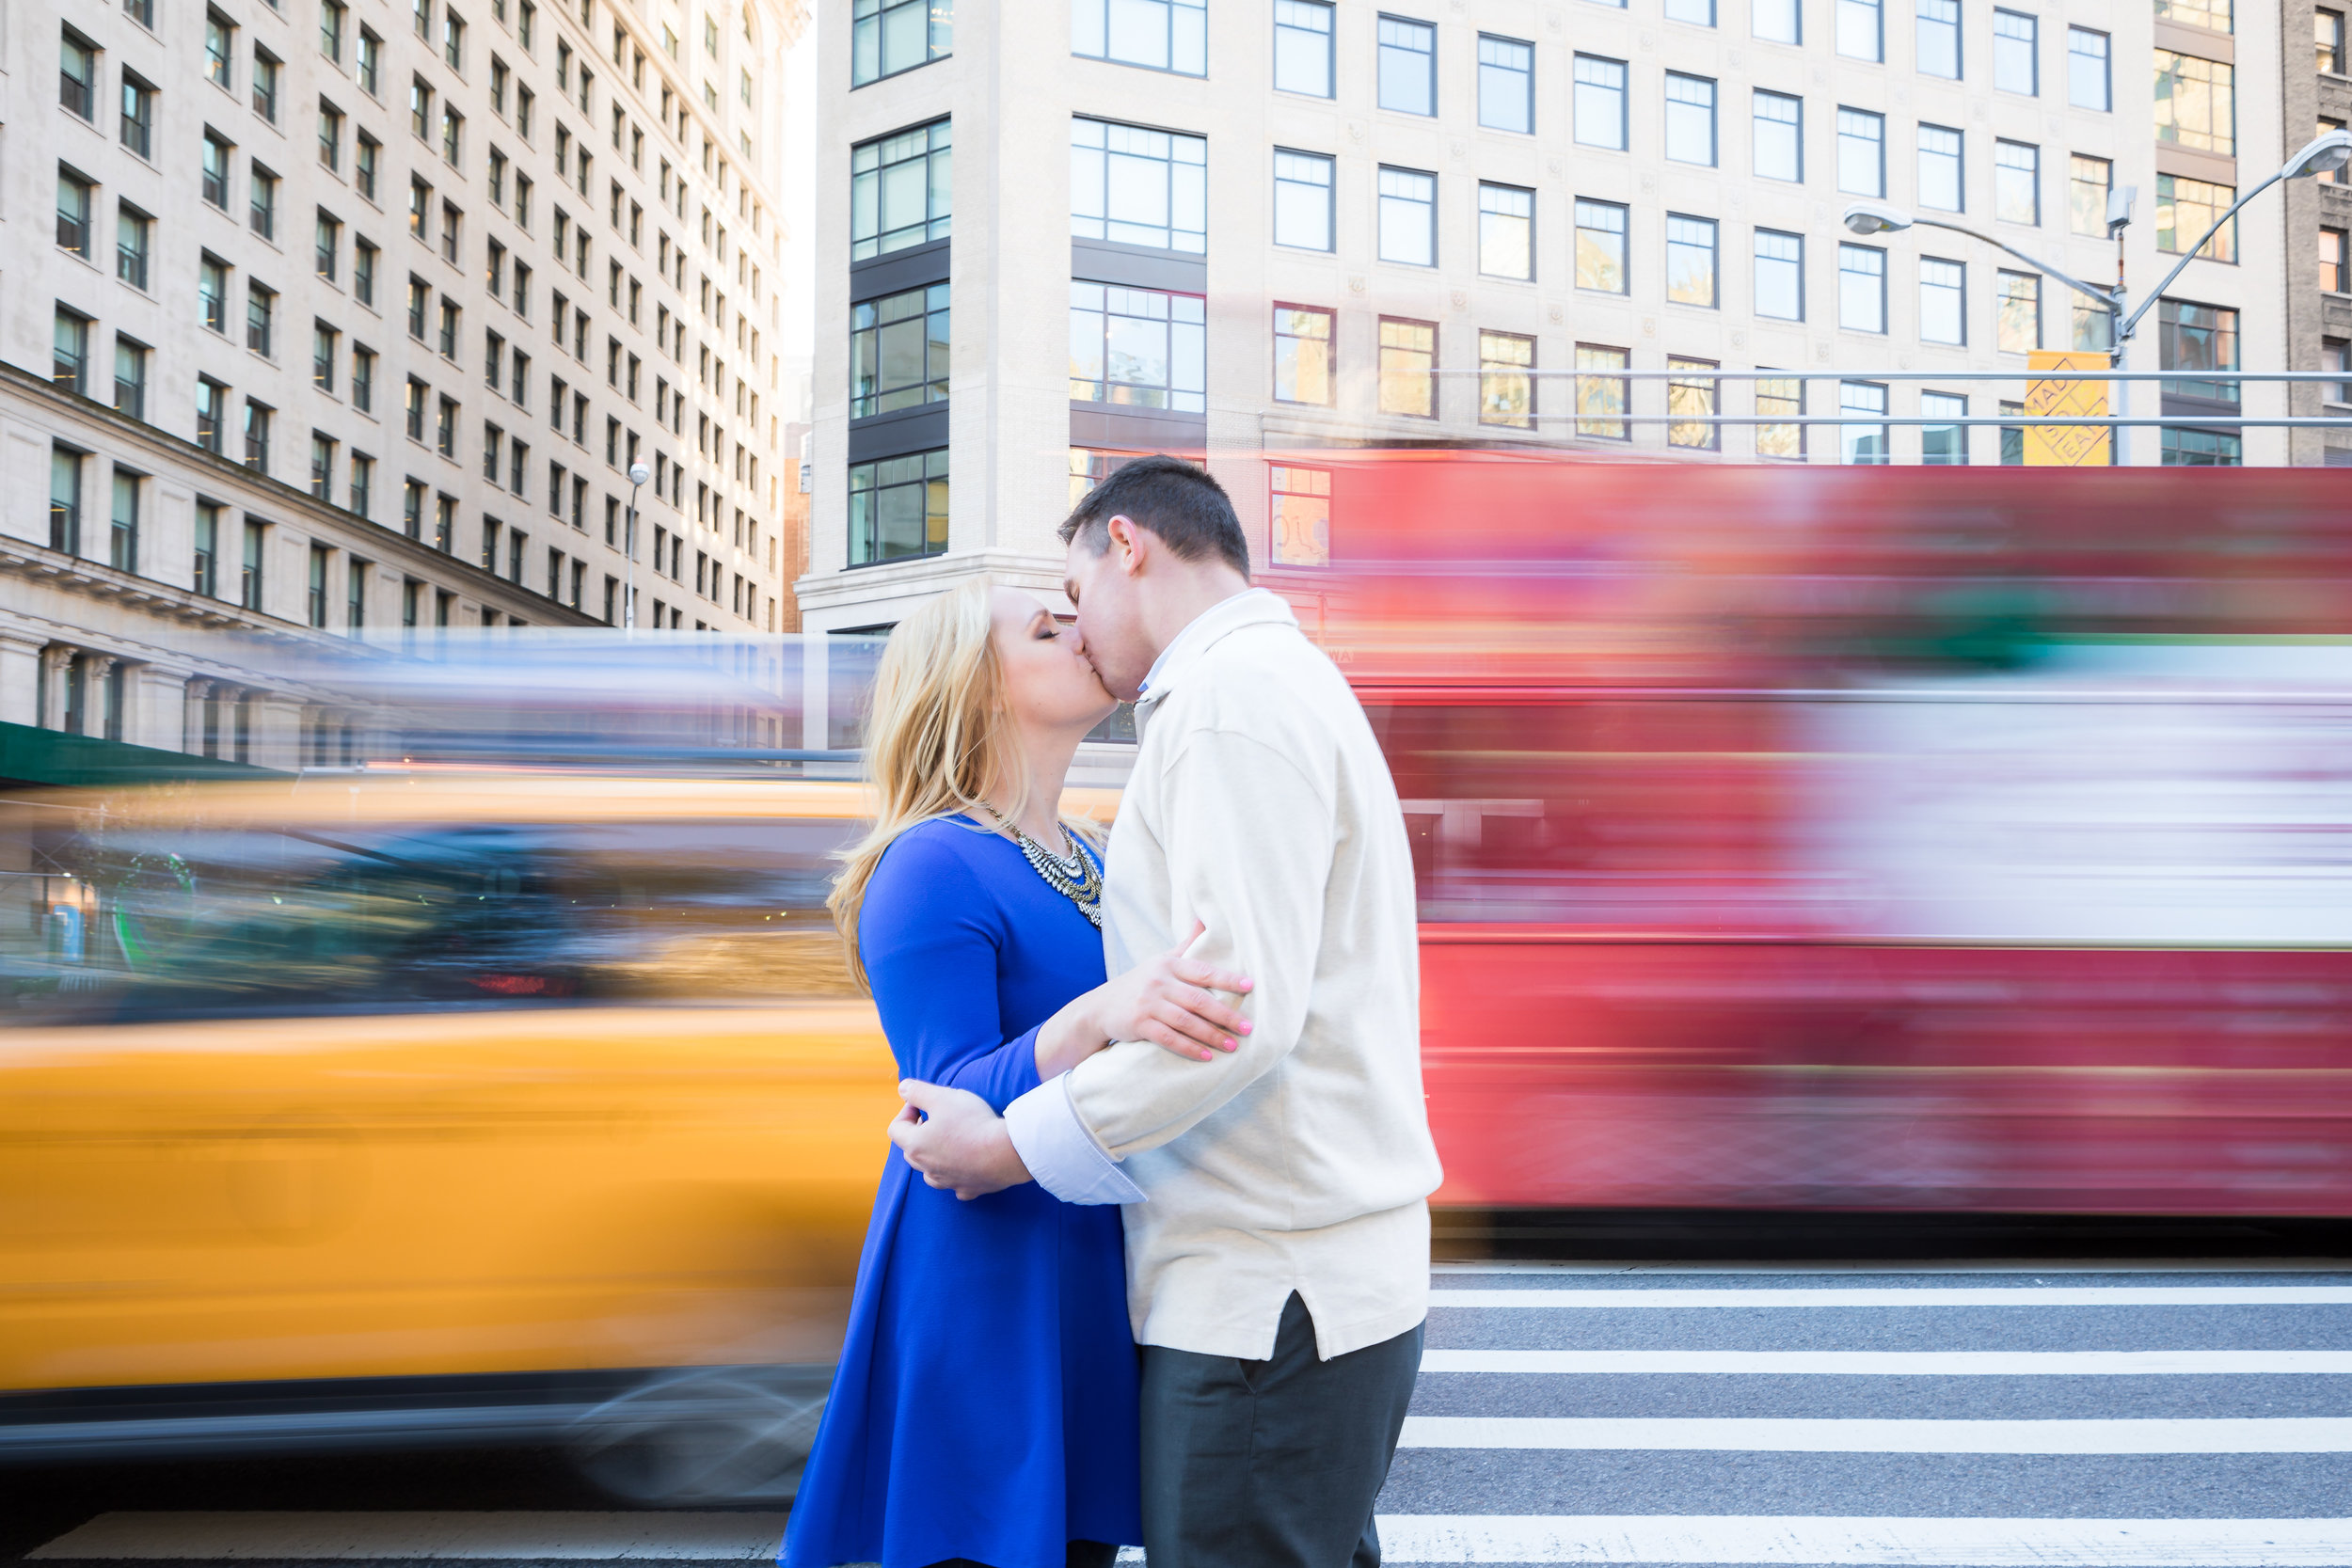 NYC_Engagement_Photos_CentralPark_Flatiron_Dumbo-0243.jpg